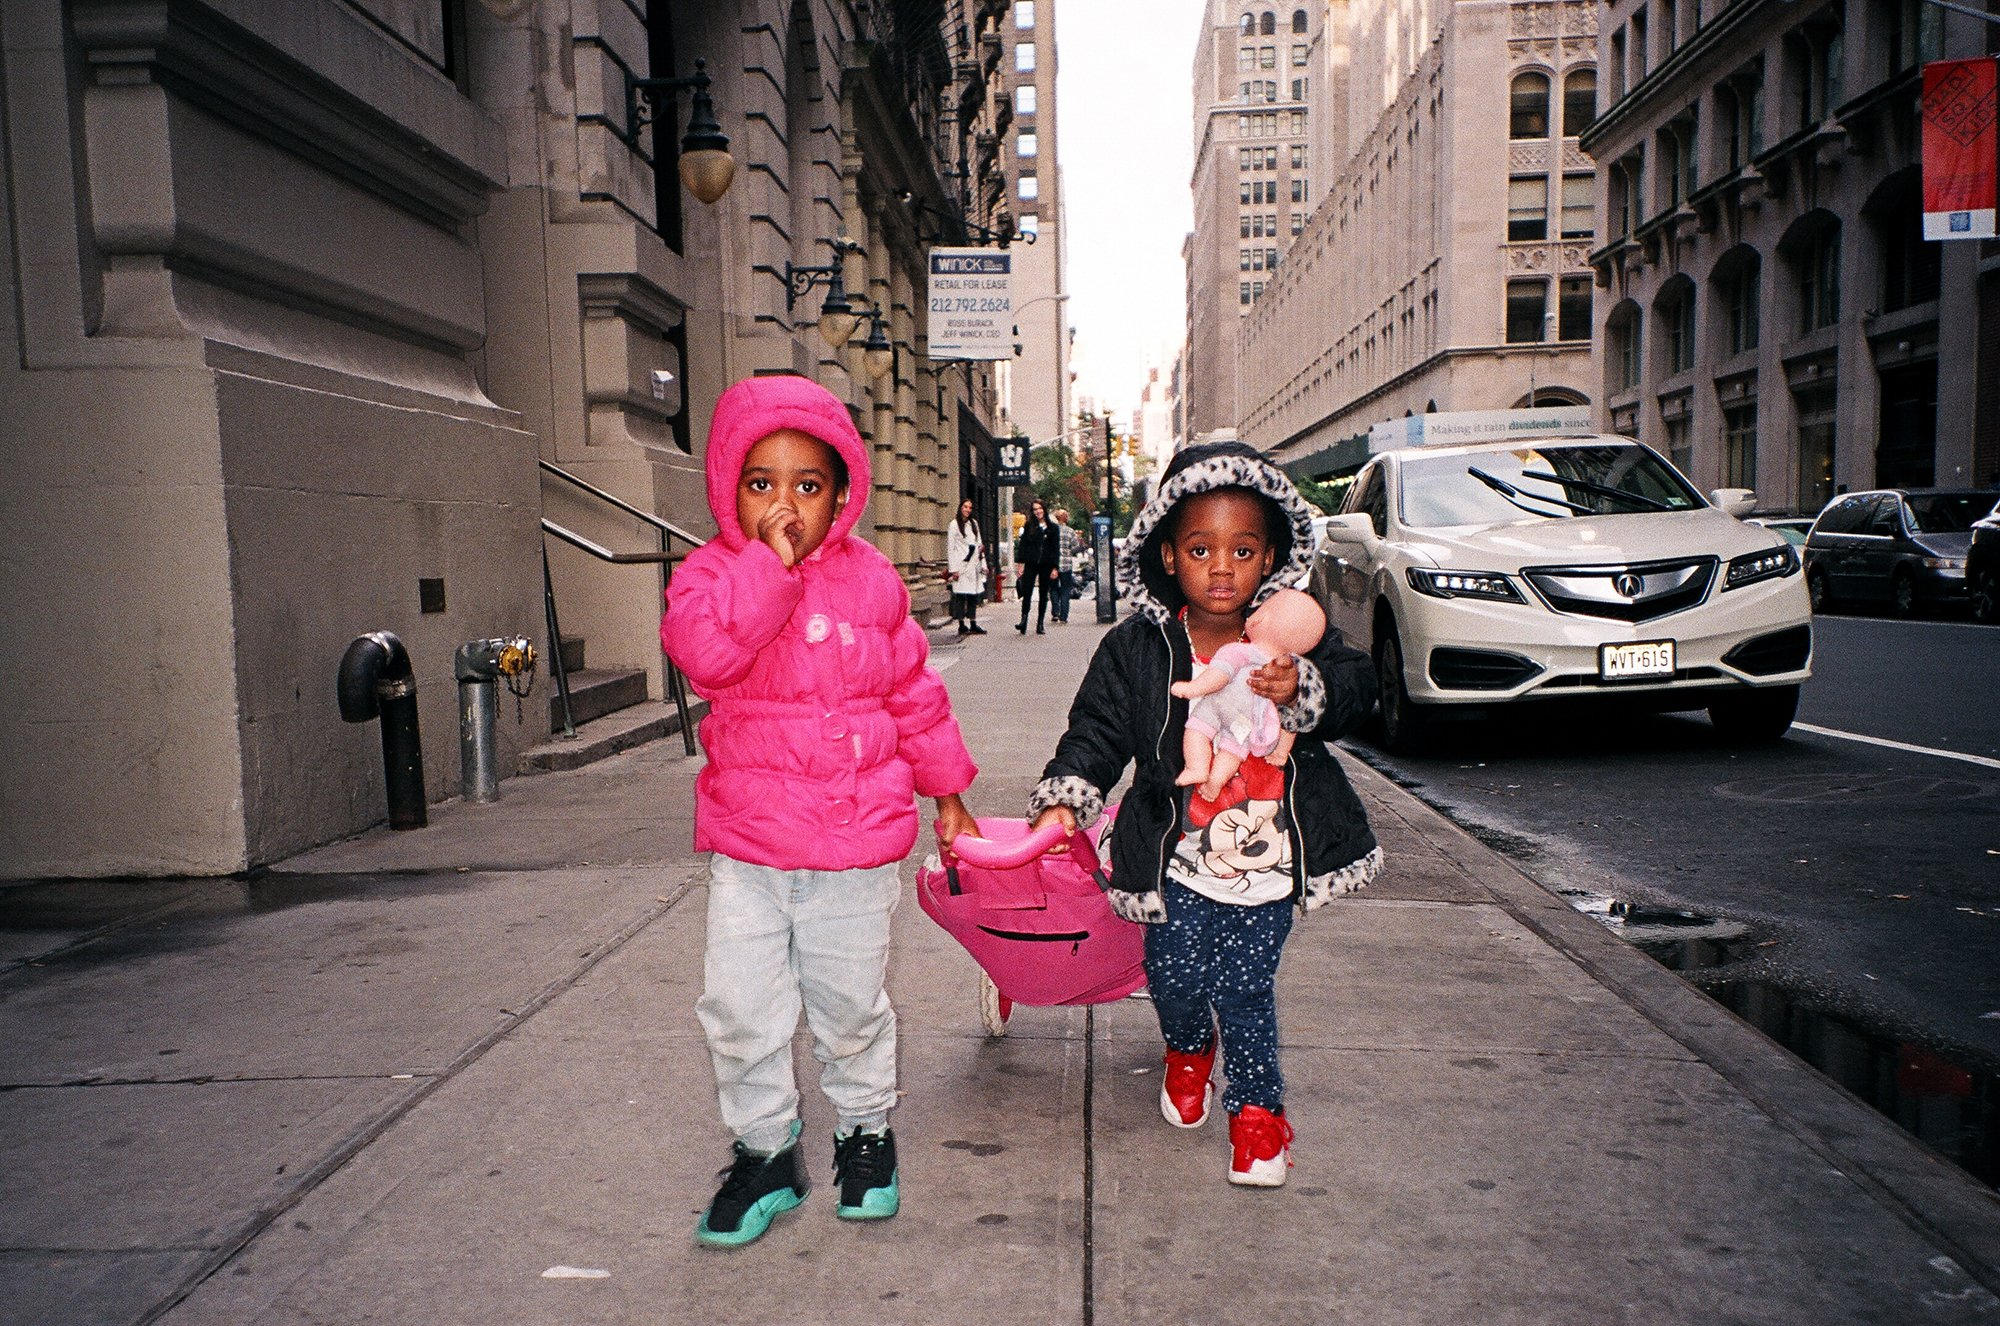 Photographer Chase Hall captures intimate moments on the streets of NYC: https://t.co/RxAFEQ3pFp https://t.co/sMRwOW5pr0